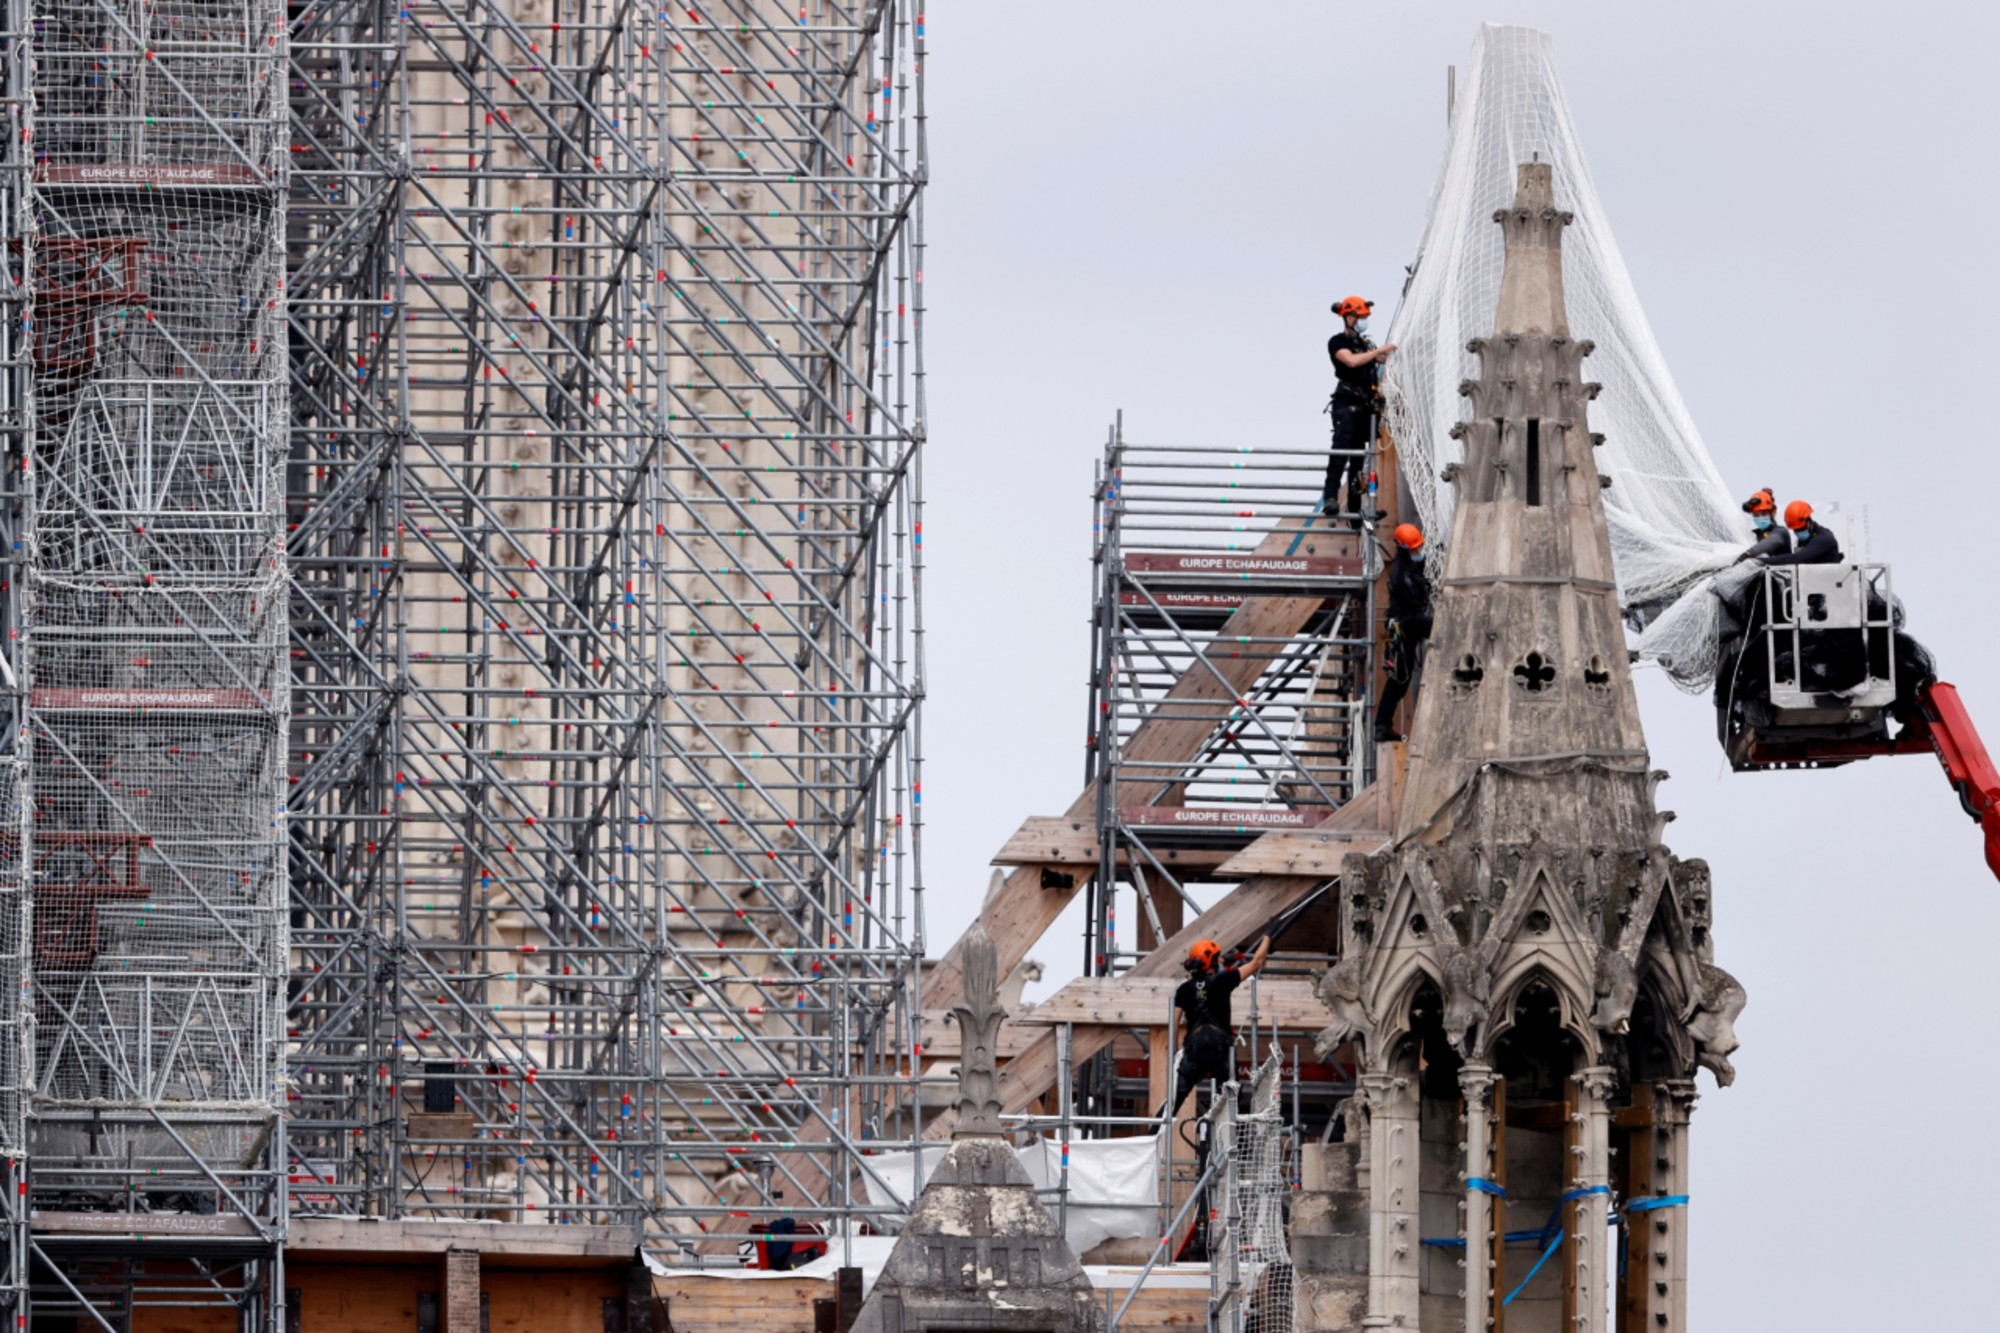 France To Restore Notre Dame Cathedral As It Was Before Inferno